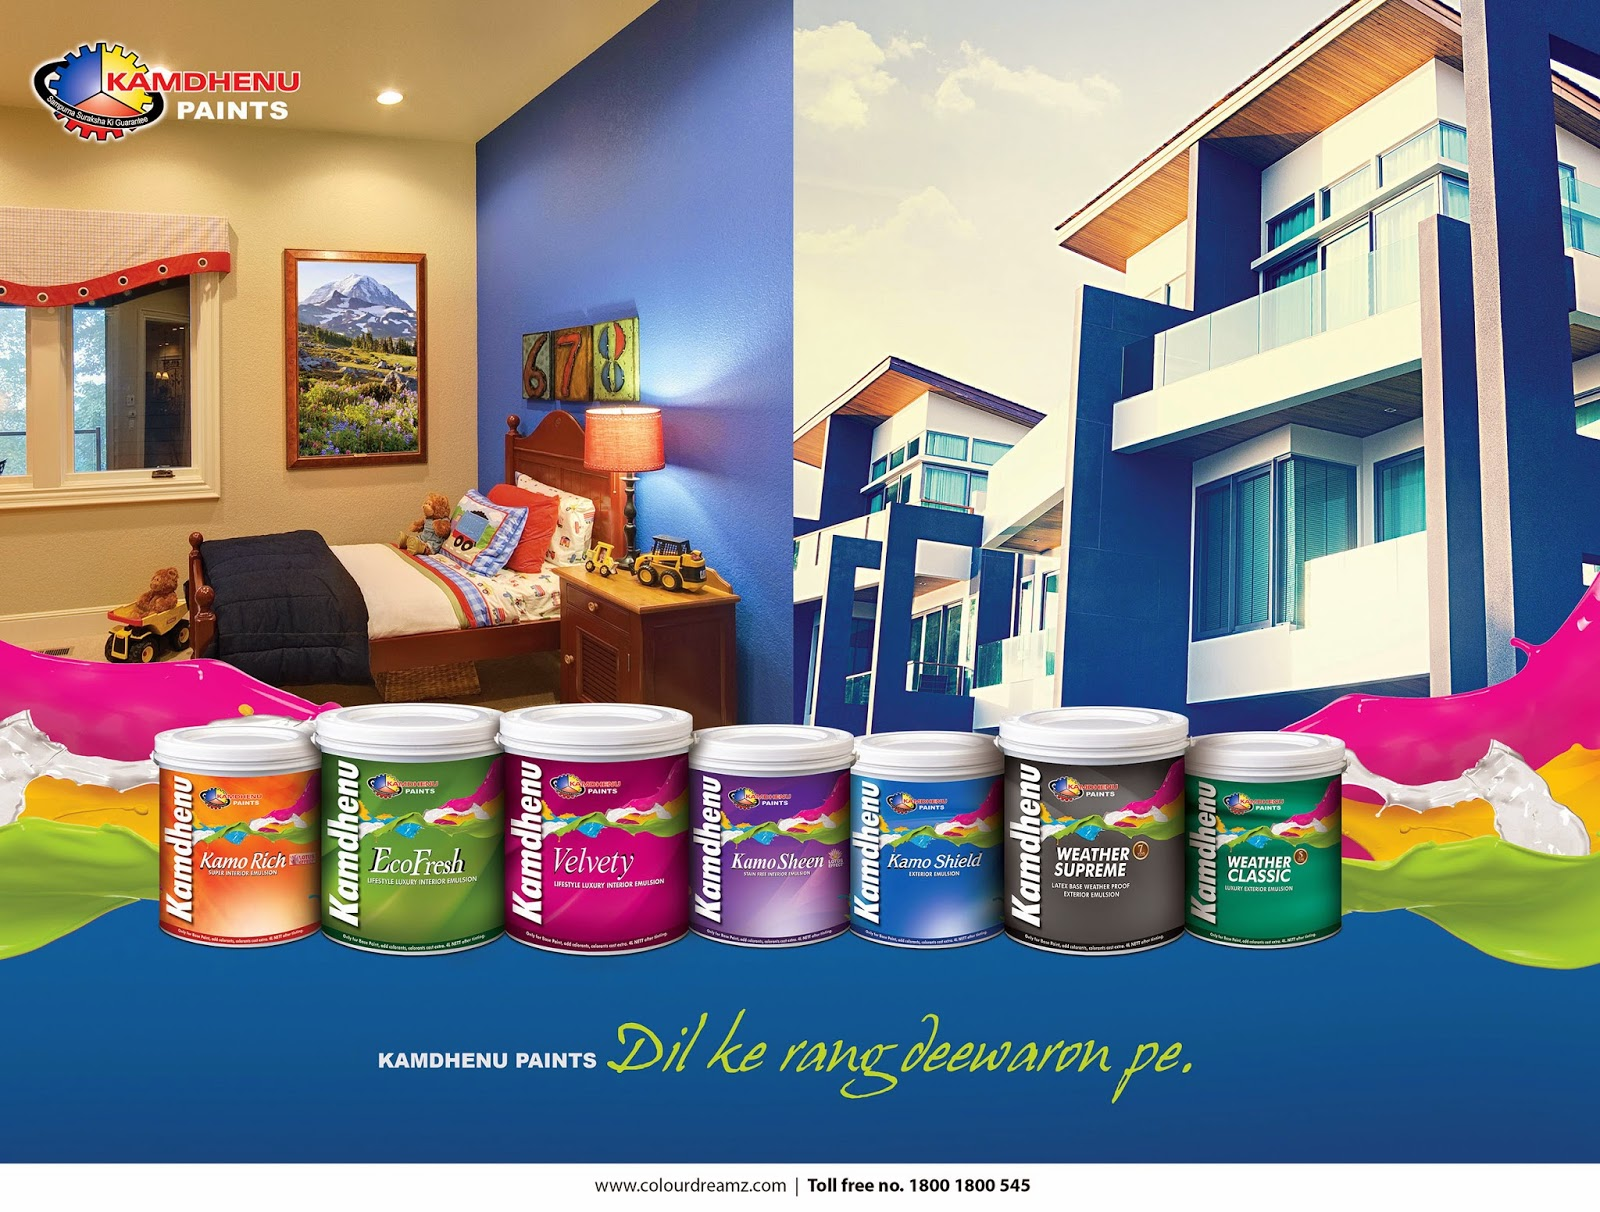 Best Paint Brand For Interior Walls In India